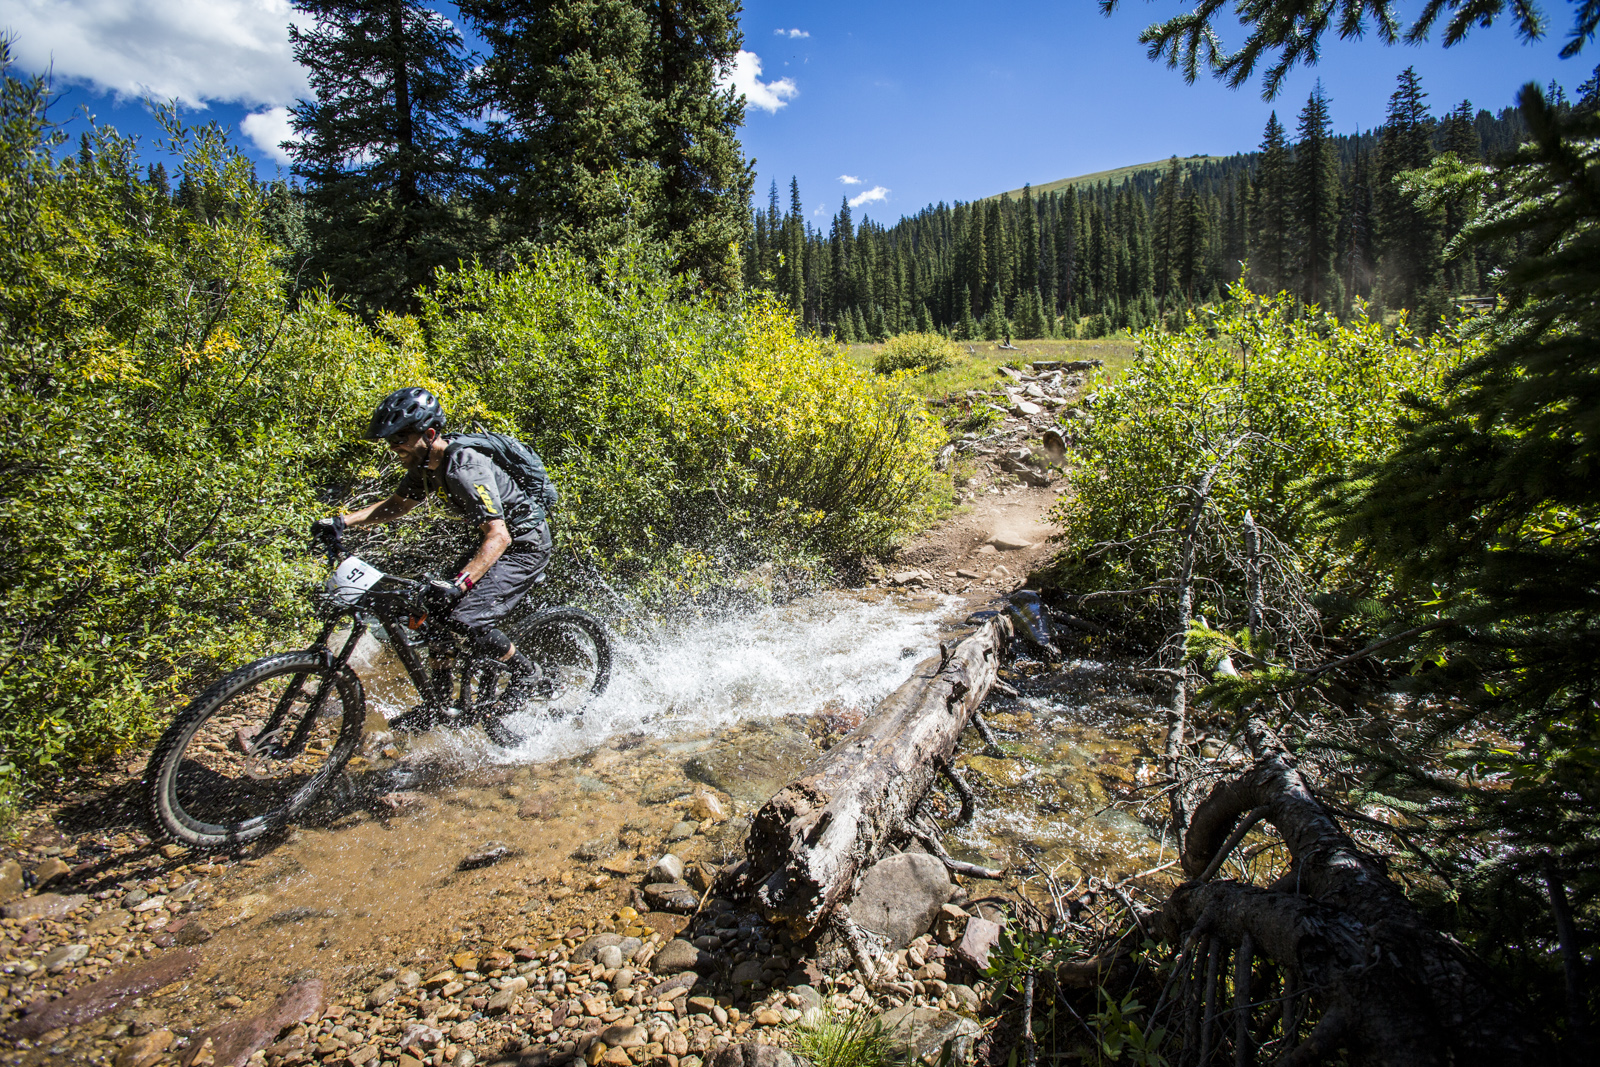 Will Olson on Trail 400 during the 2014 Crested Butte Ultra Enduro.